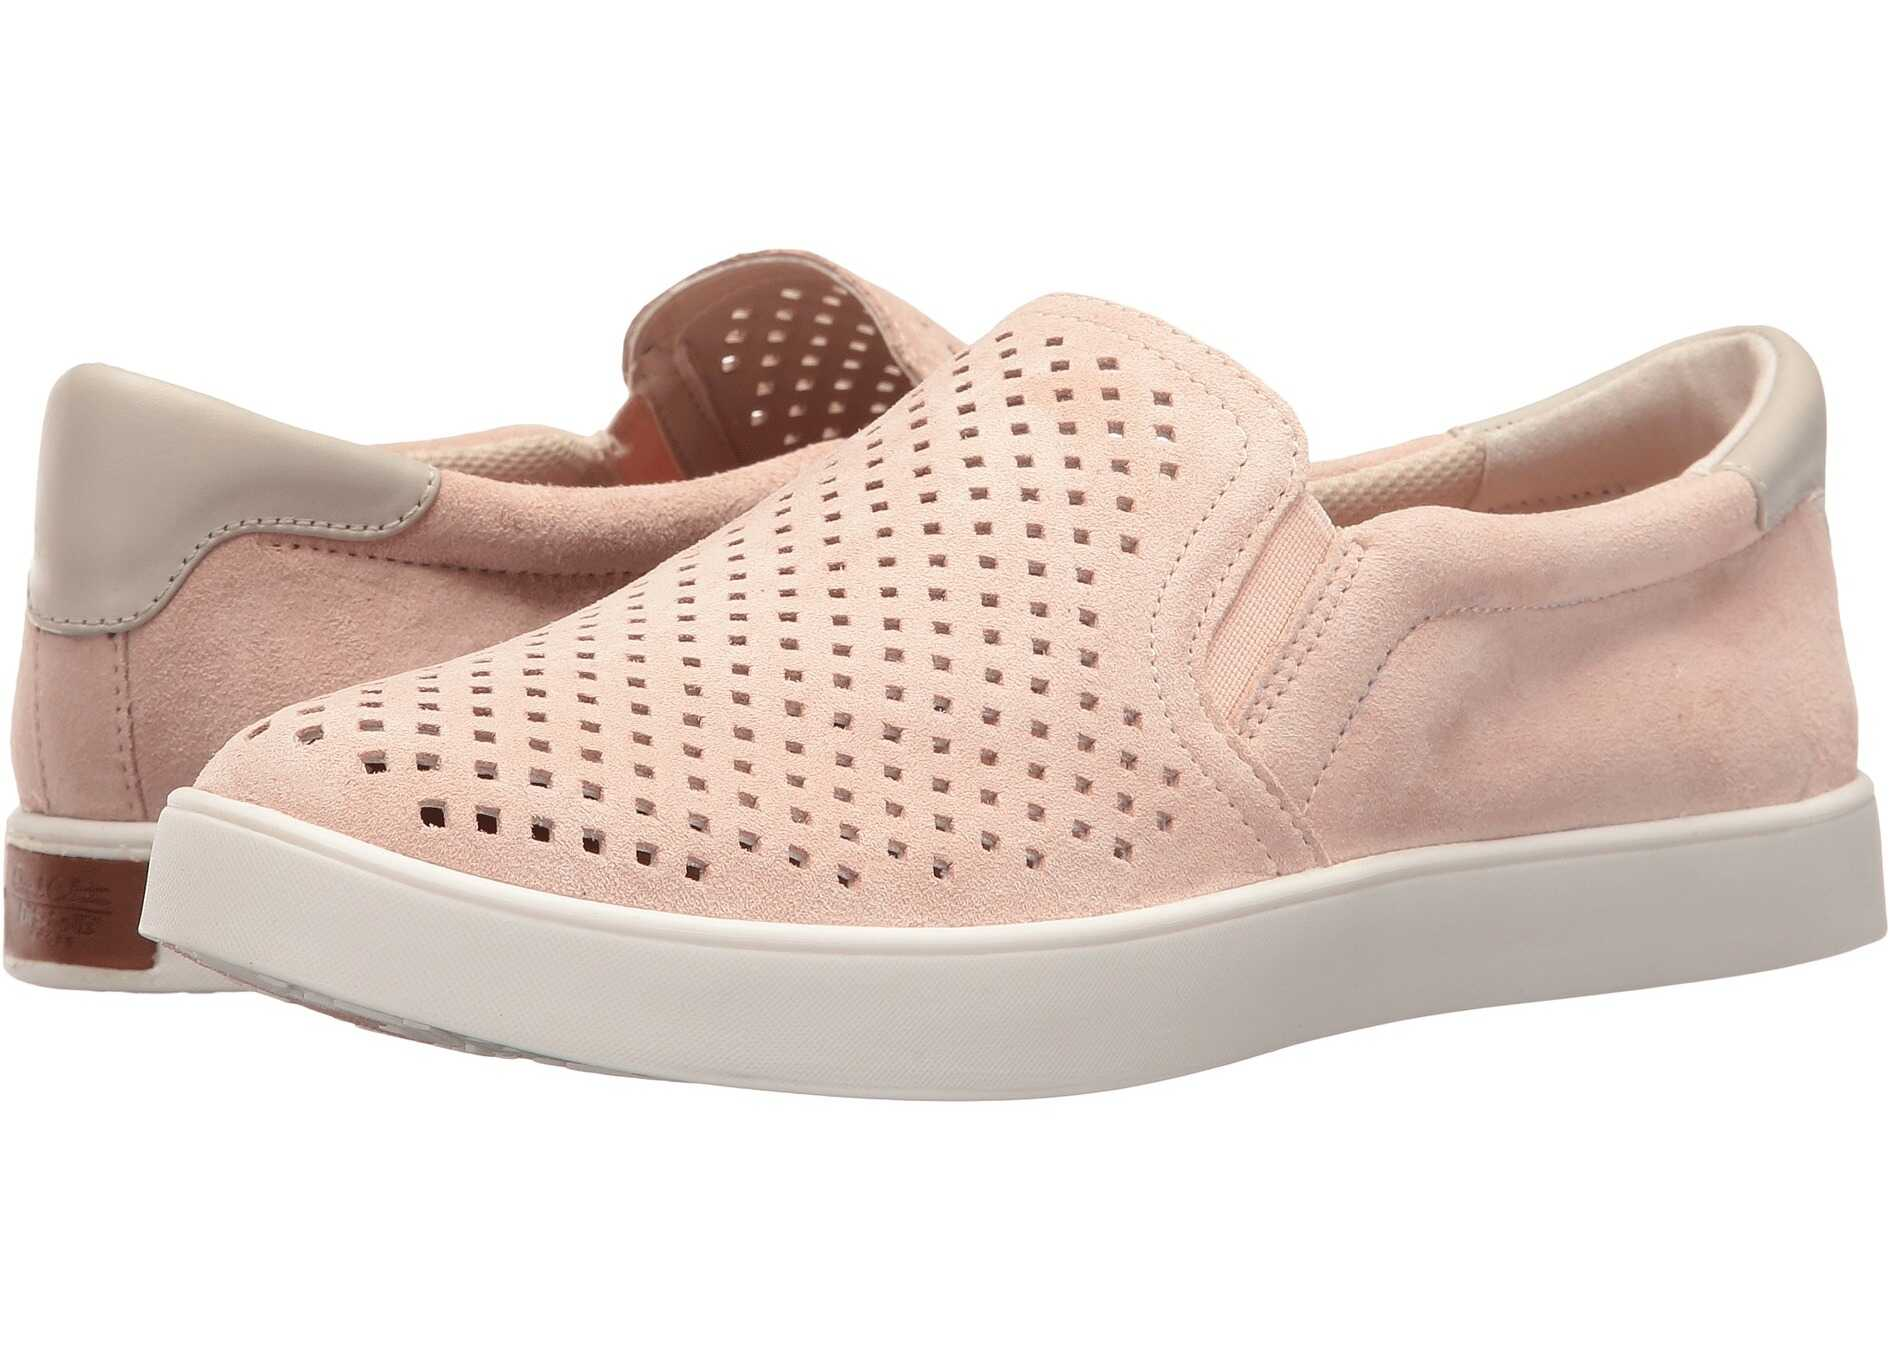 Dr. Scholls Scout - Original Collection Pink Blush Suede Perf